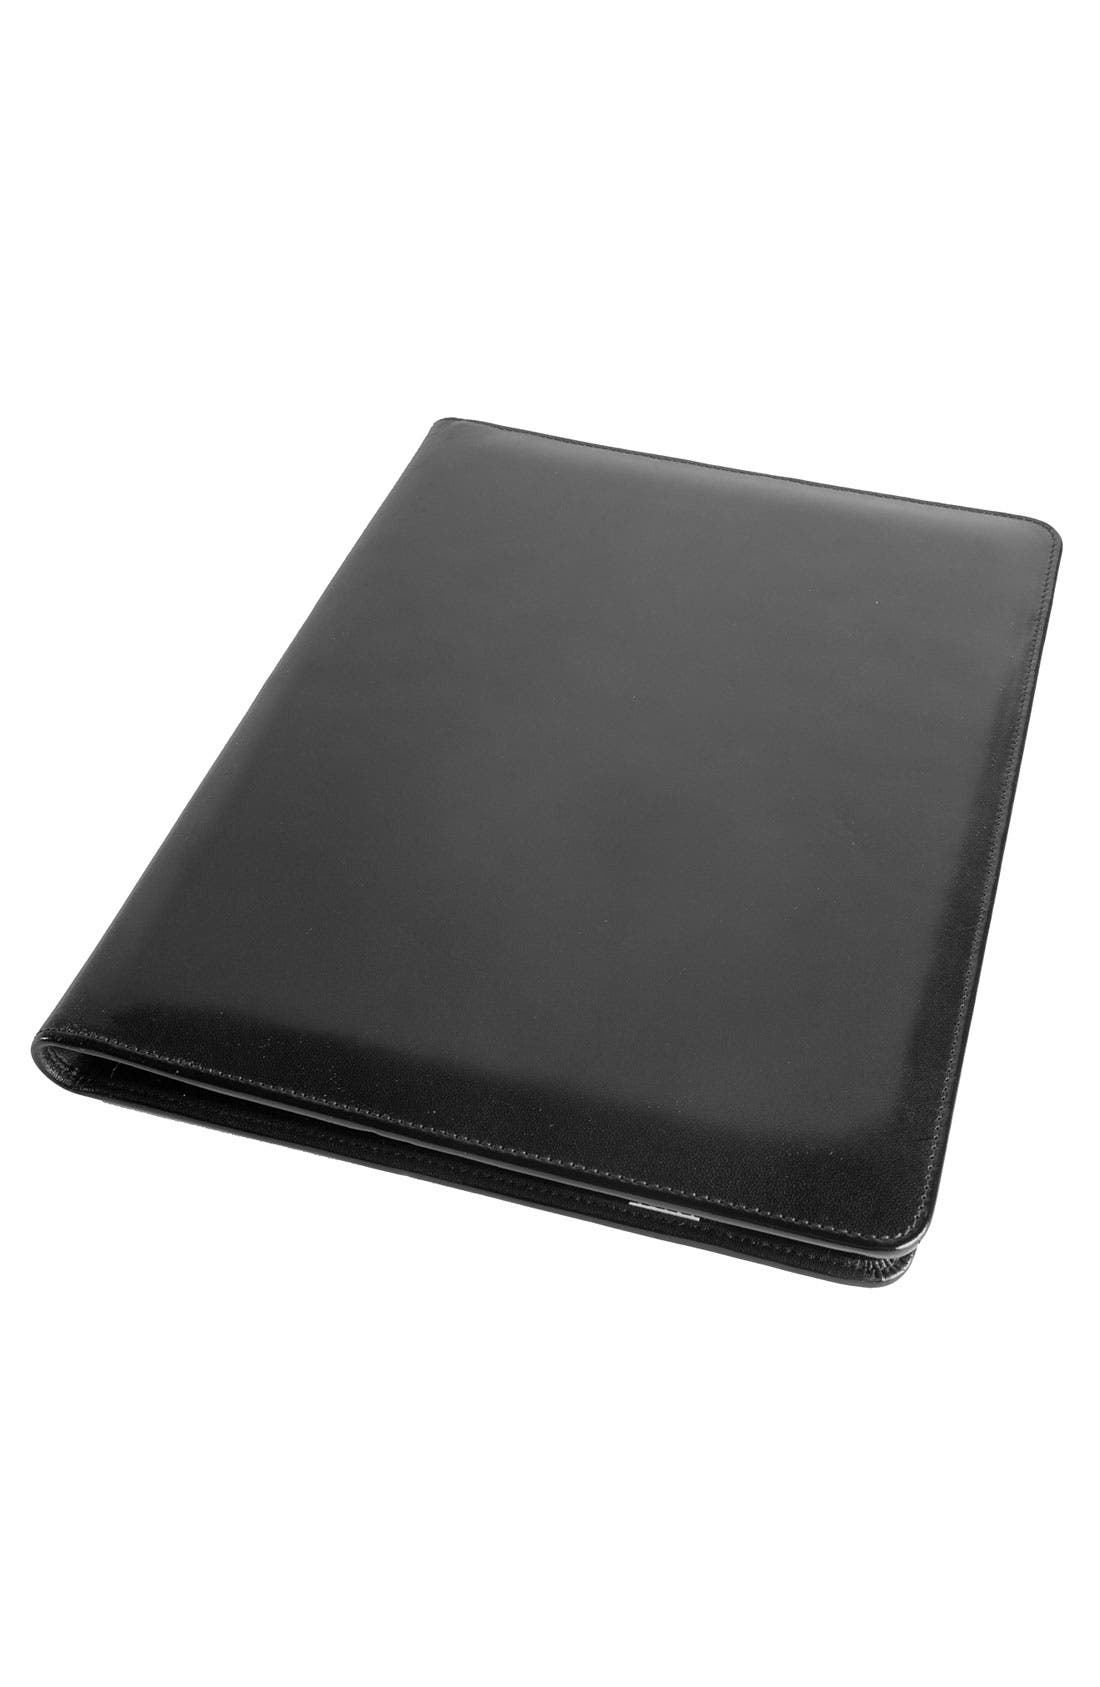 Main Image - Bosca Leather Letter Pad Cover